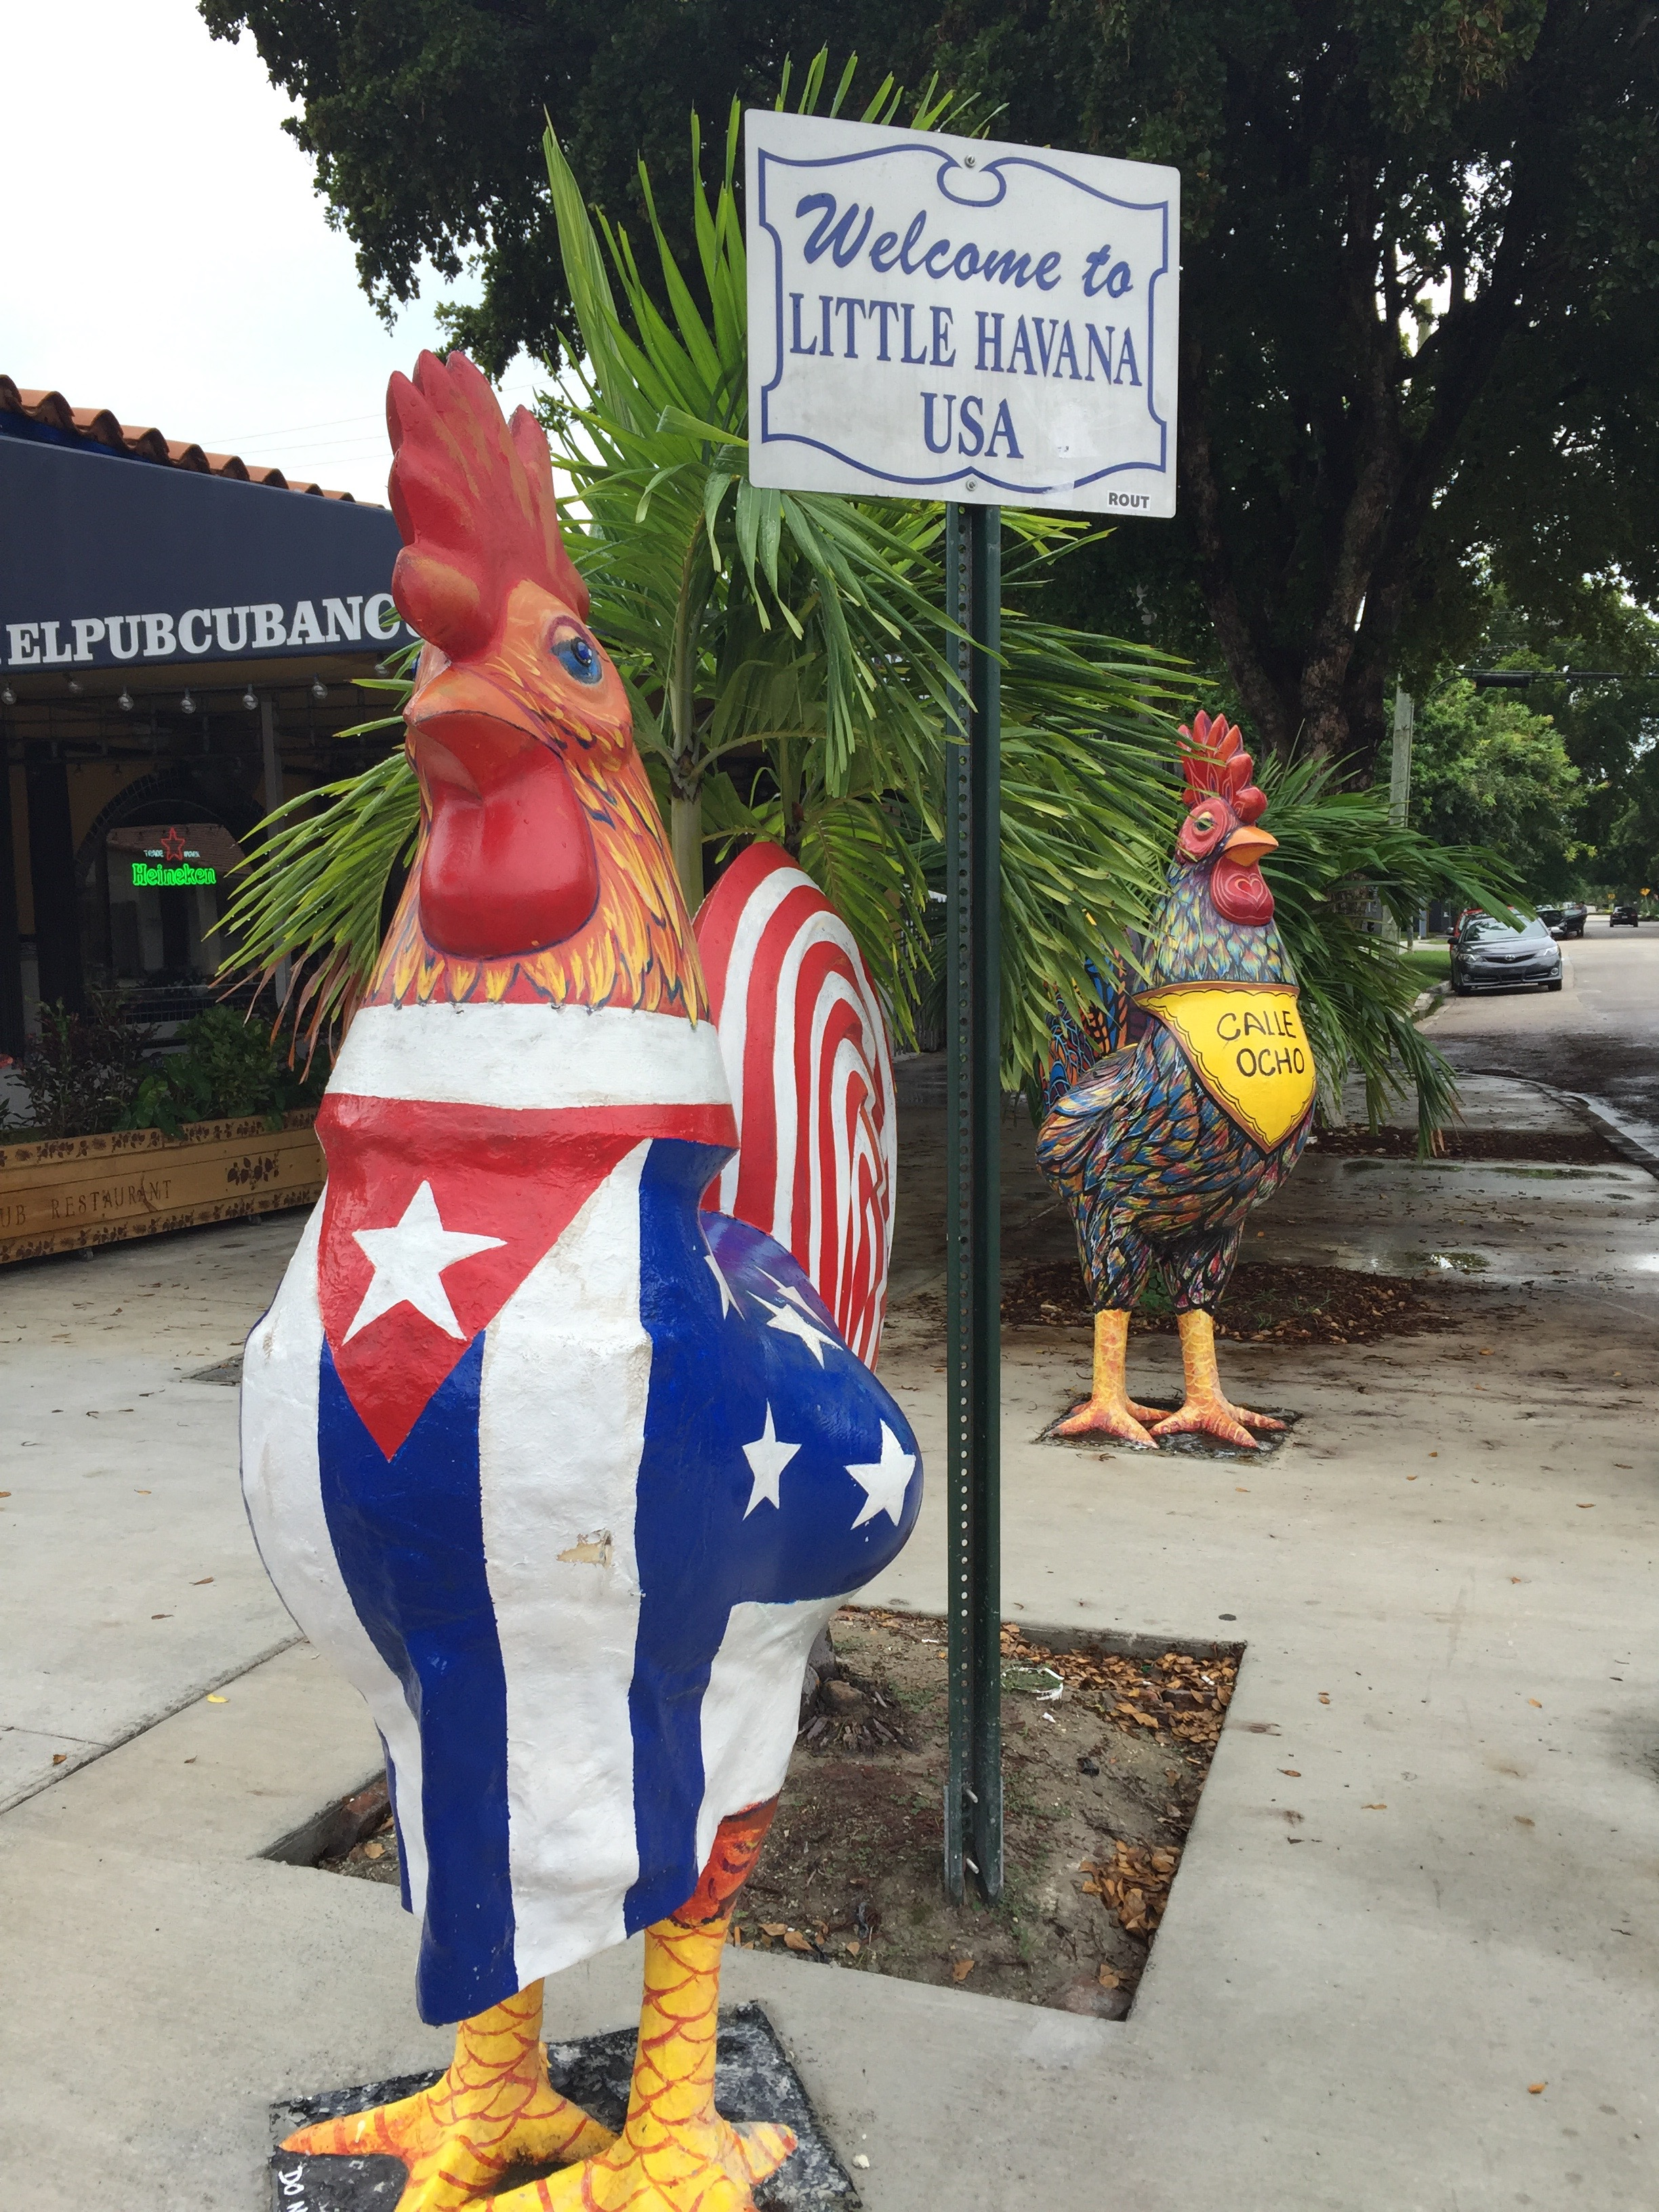 If I lived in Miami I would be over-caffeinated and suffer from overeating, because I would have to live near Little Havana.  Really couldn't get enough Cuban coffee and food, so yummy.